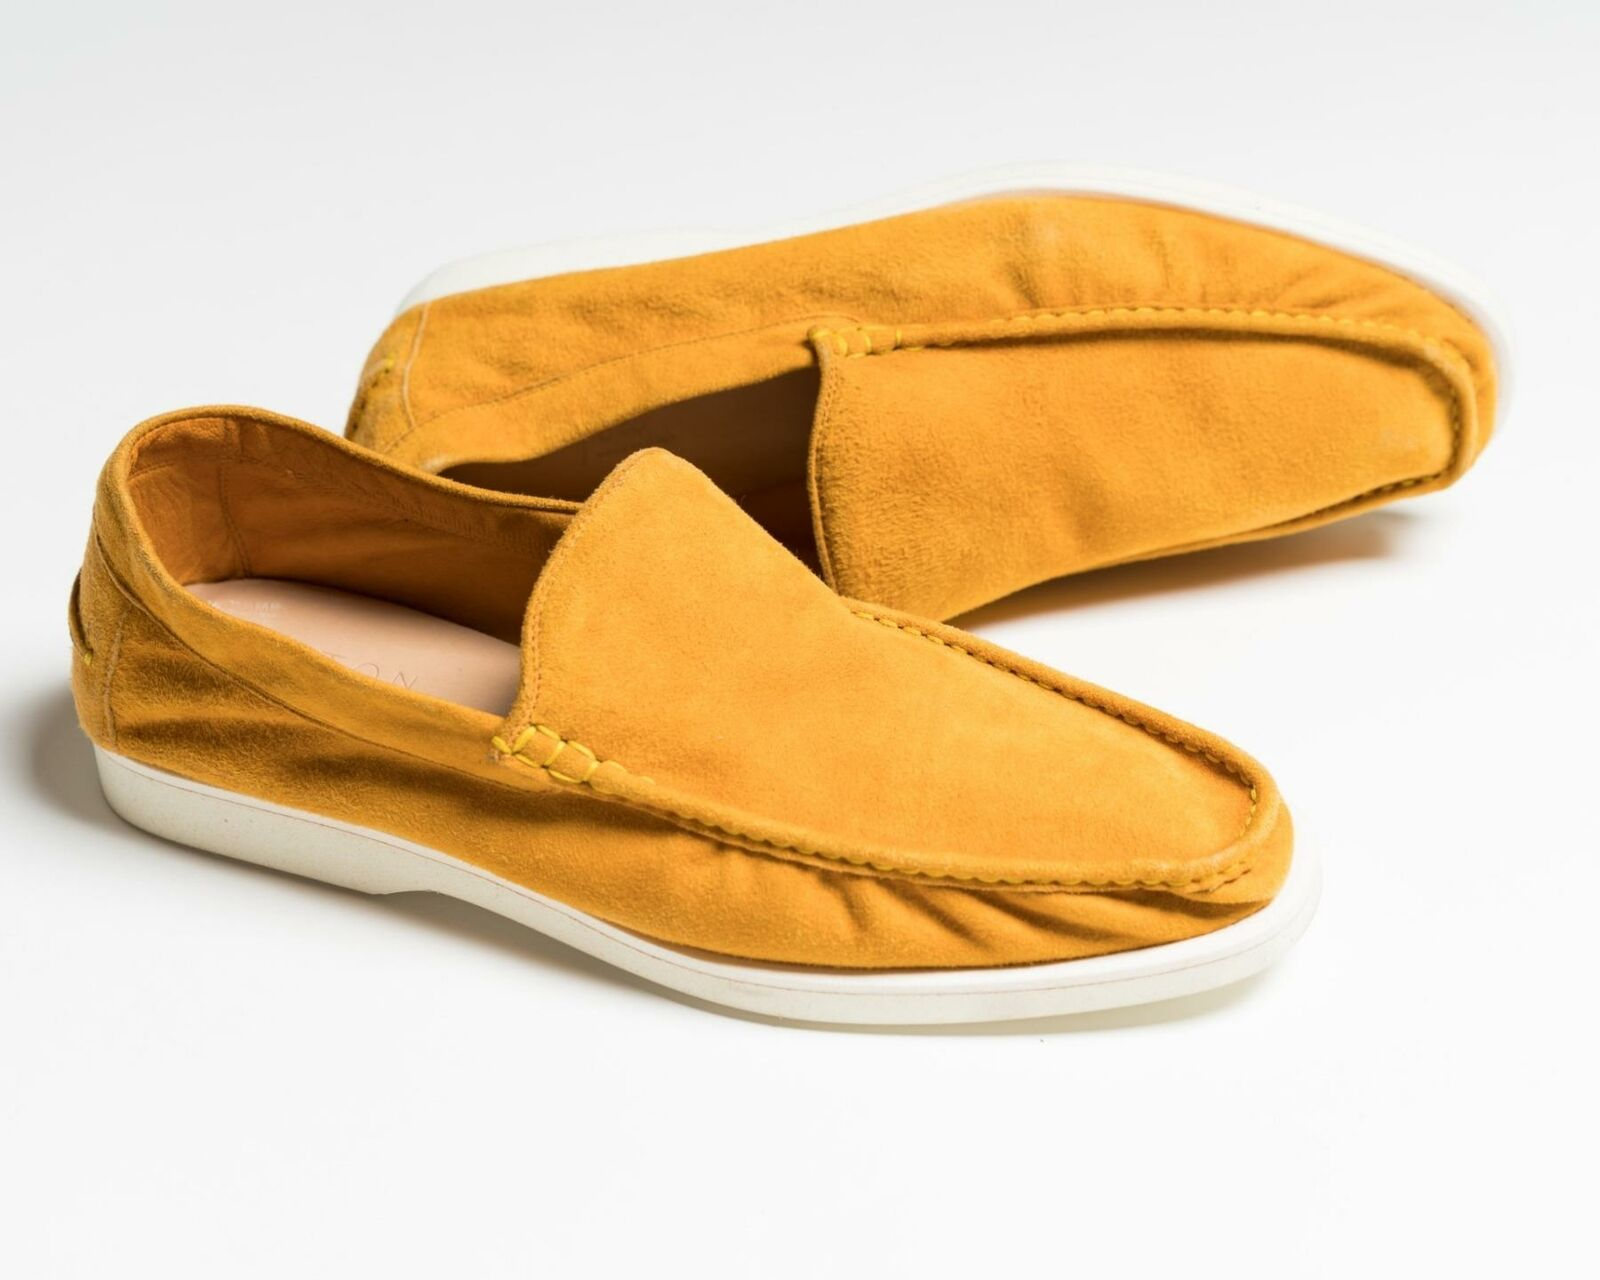 Kiton ,695 NIB Yellow Suede Venetian Loafers Rubber Sole Shoes 9 US